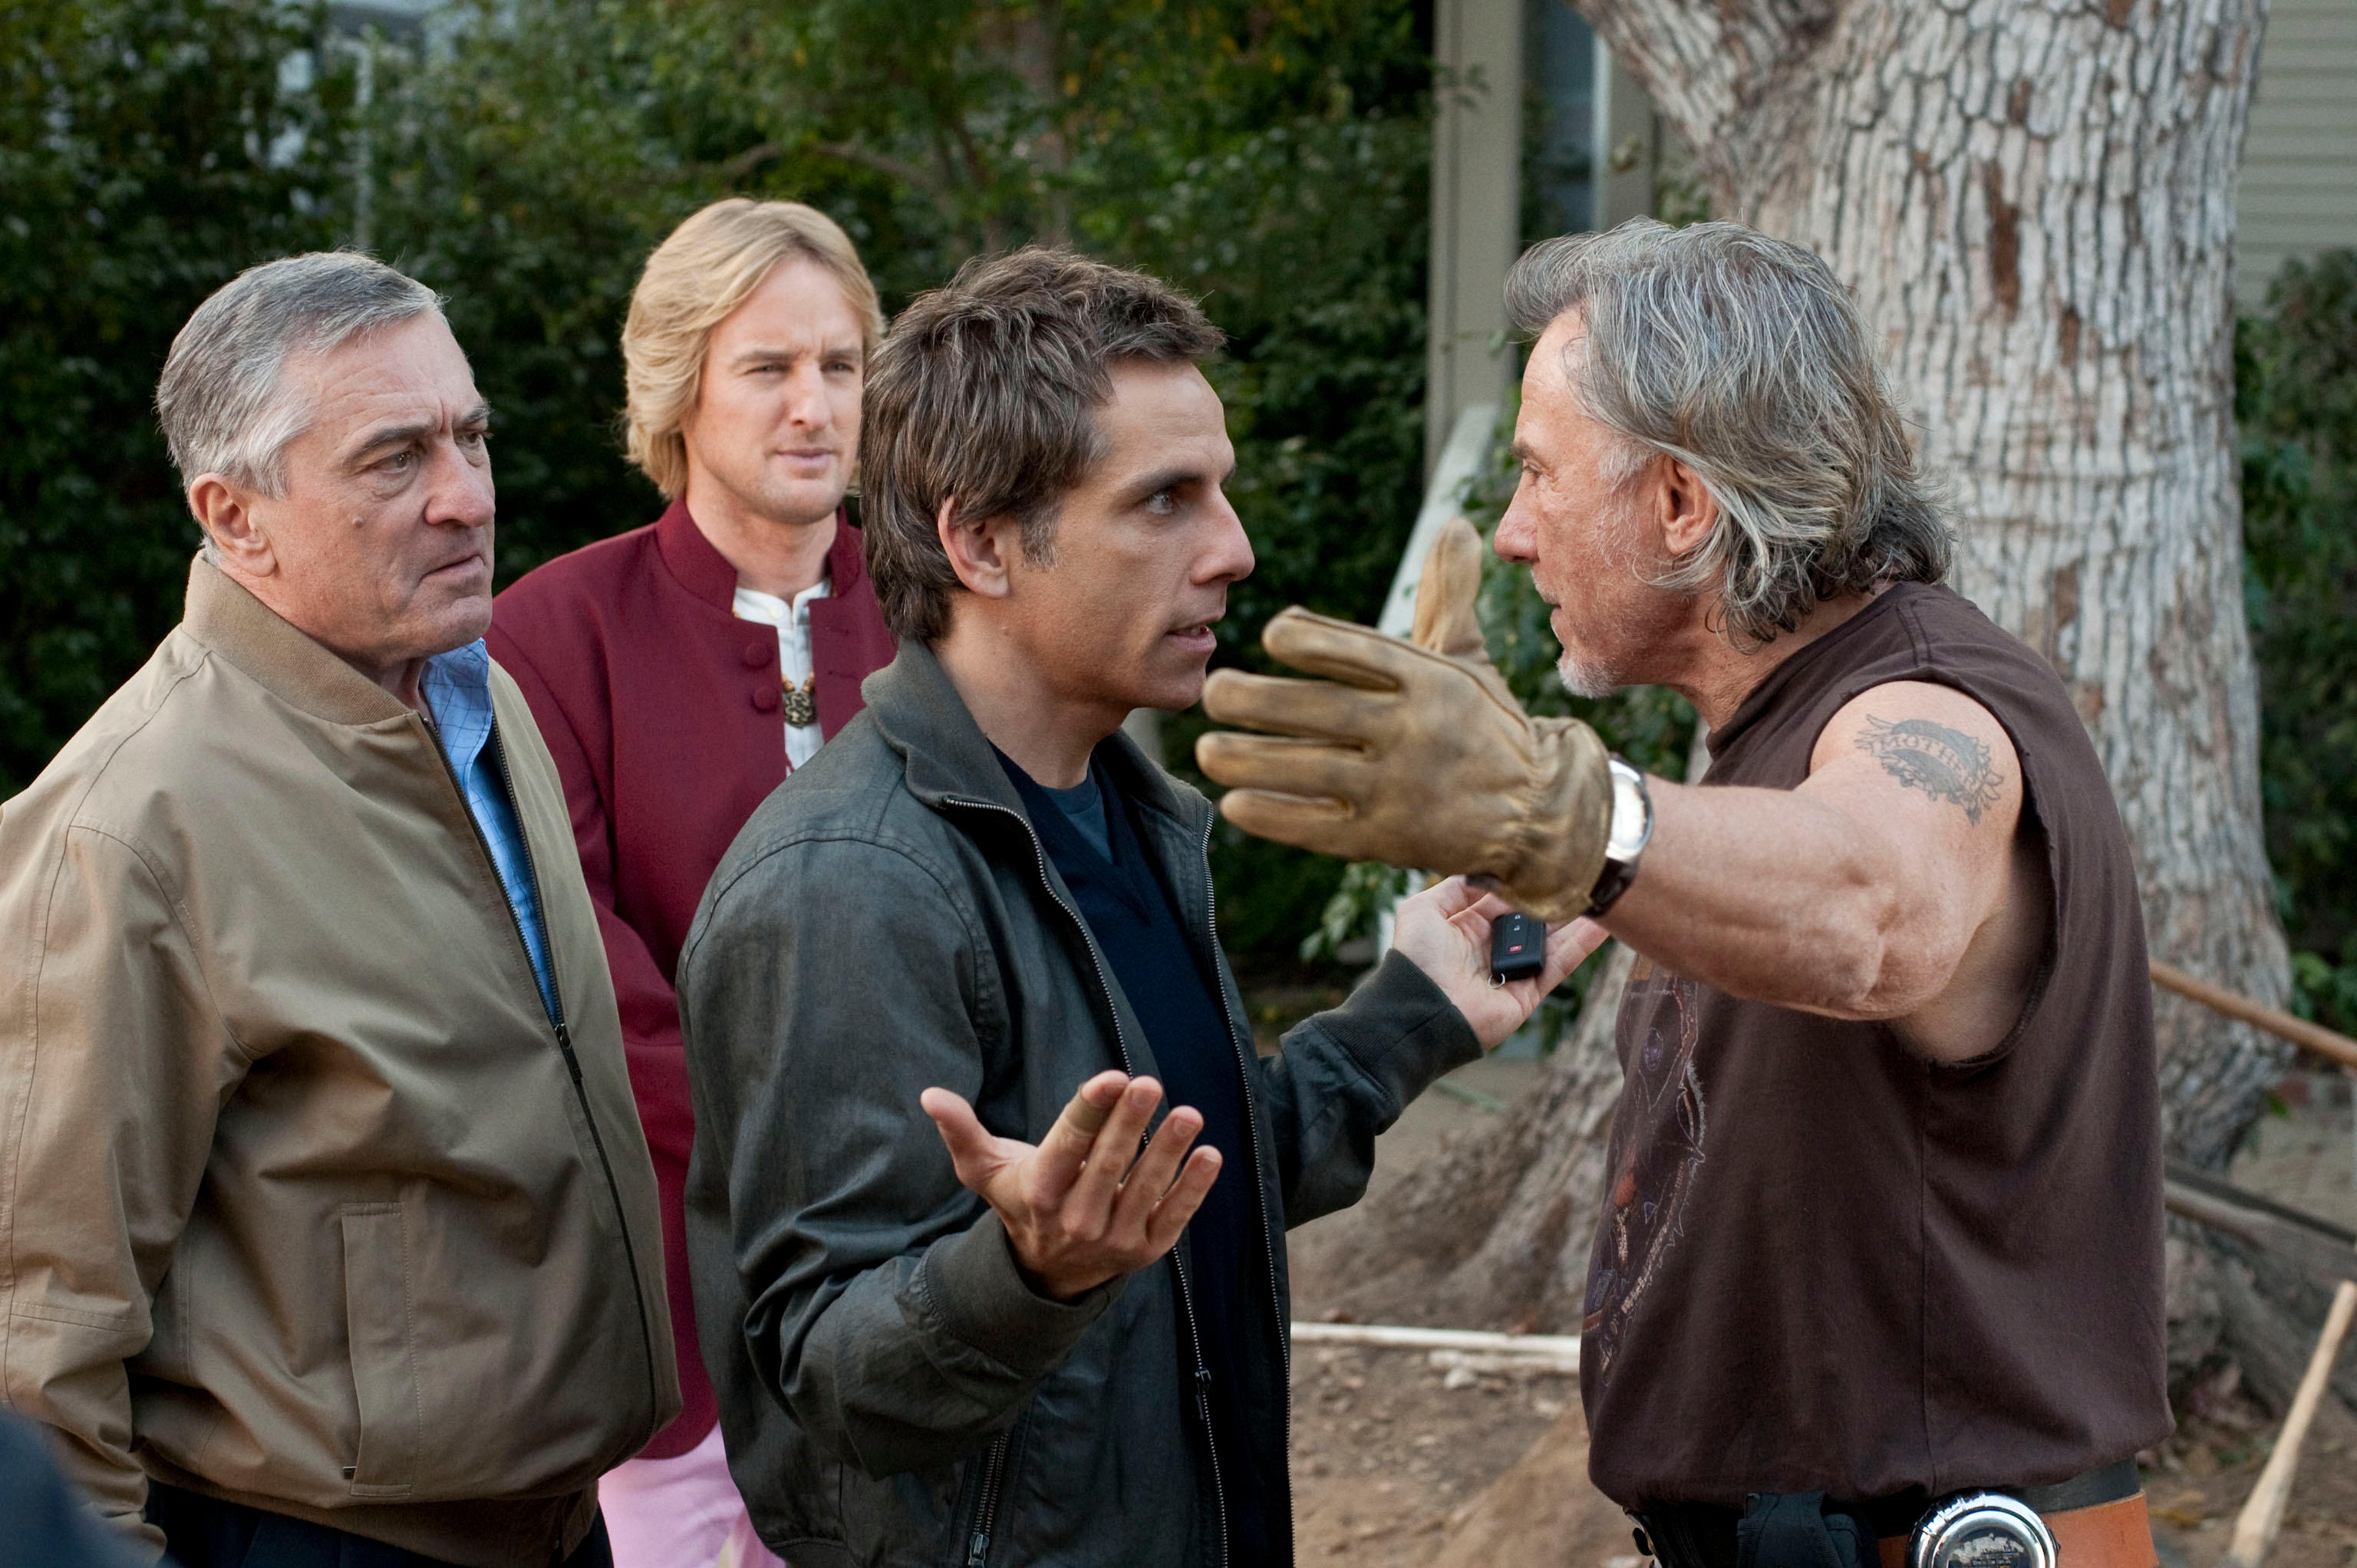 Who are you moving in next door to? - Meet the Fockers